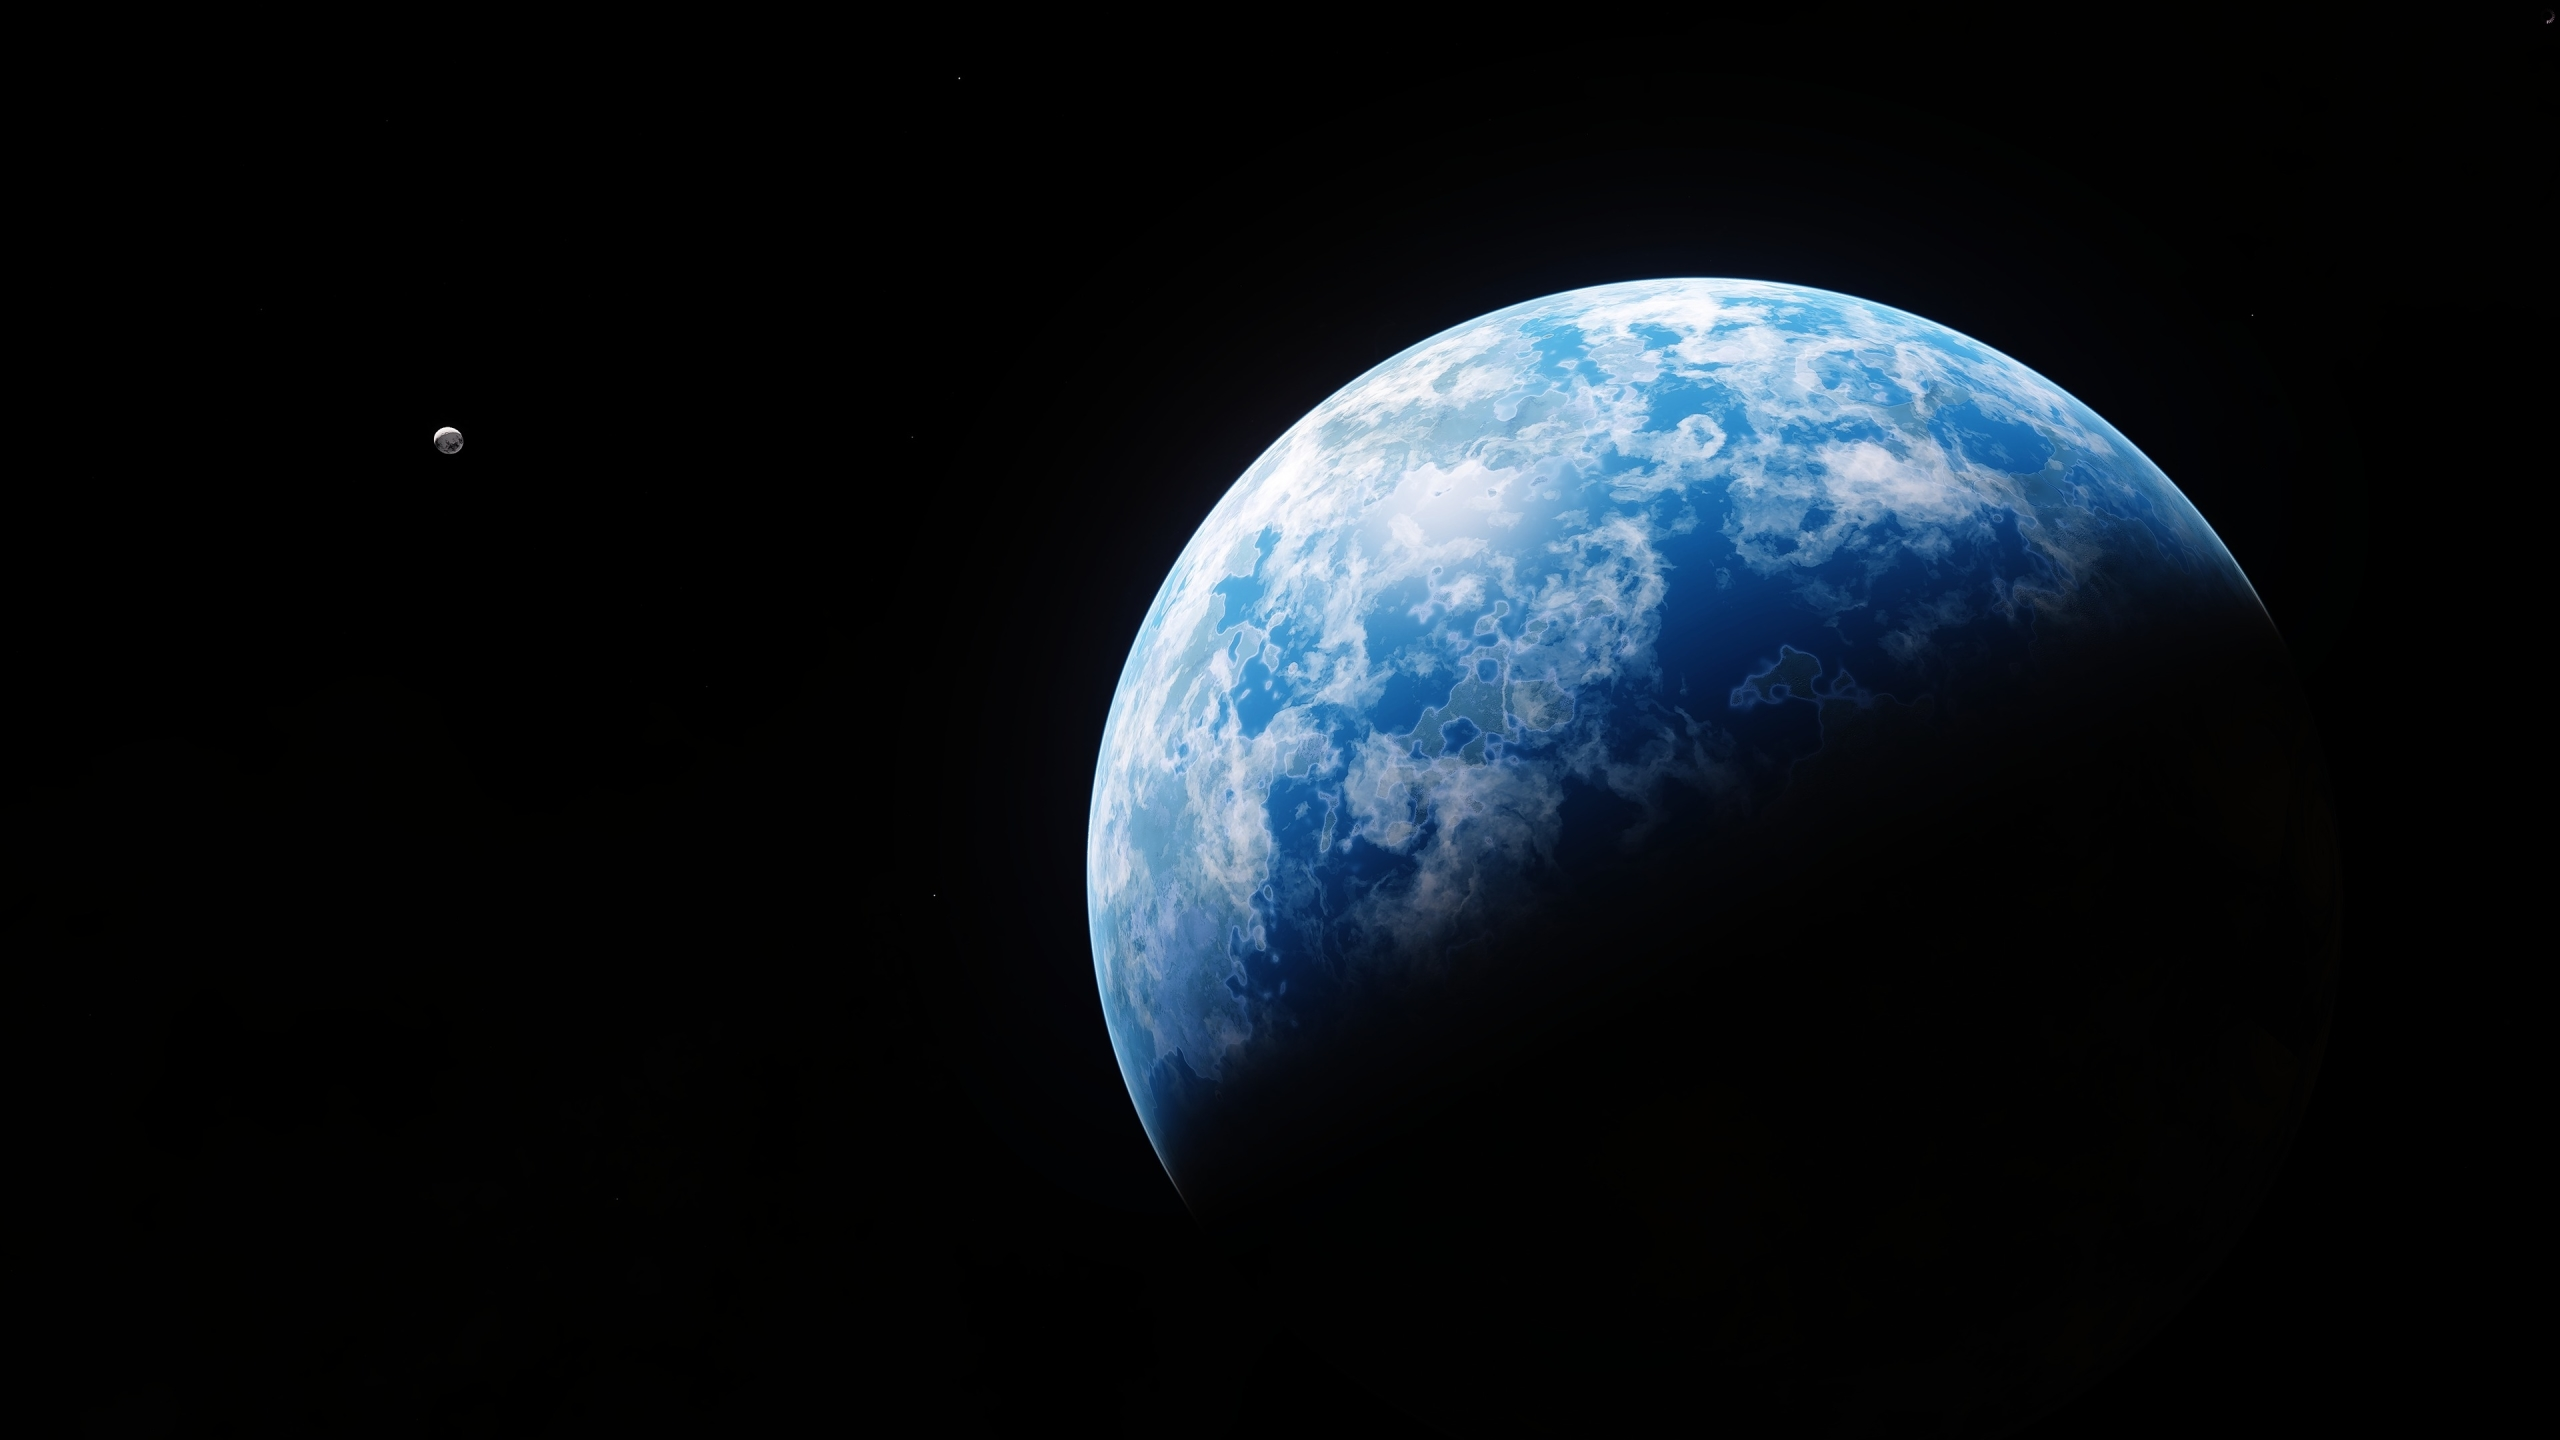 2560x1440 4k Planet Earth 1440p Resolution Wallpaper Hd Space 4k Wallpapers Images Photos And Background